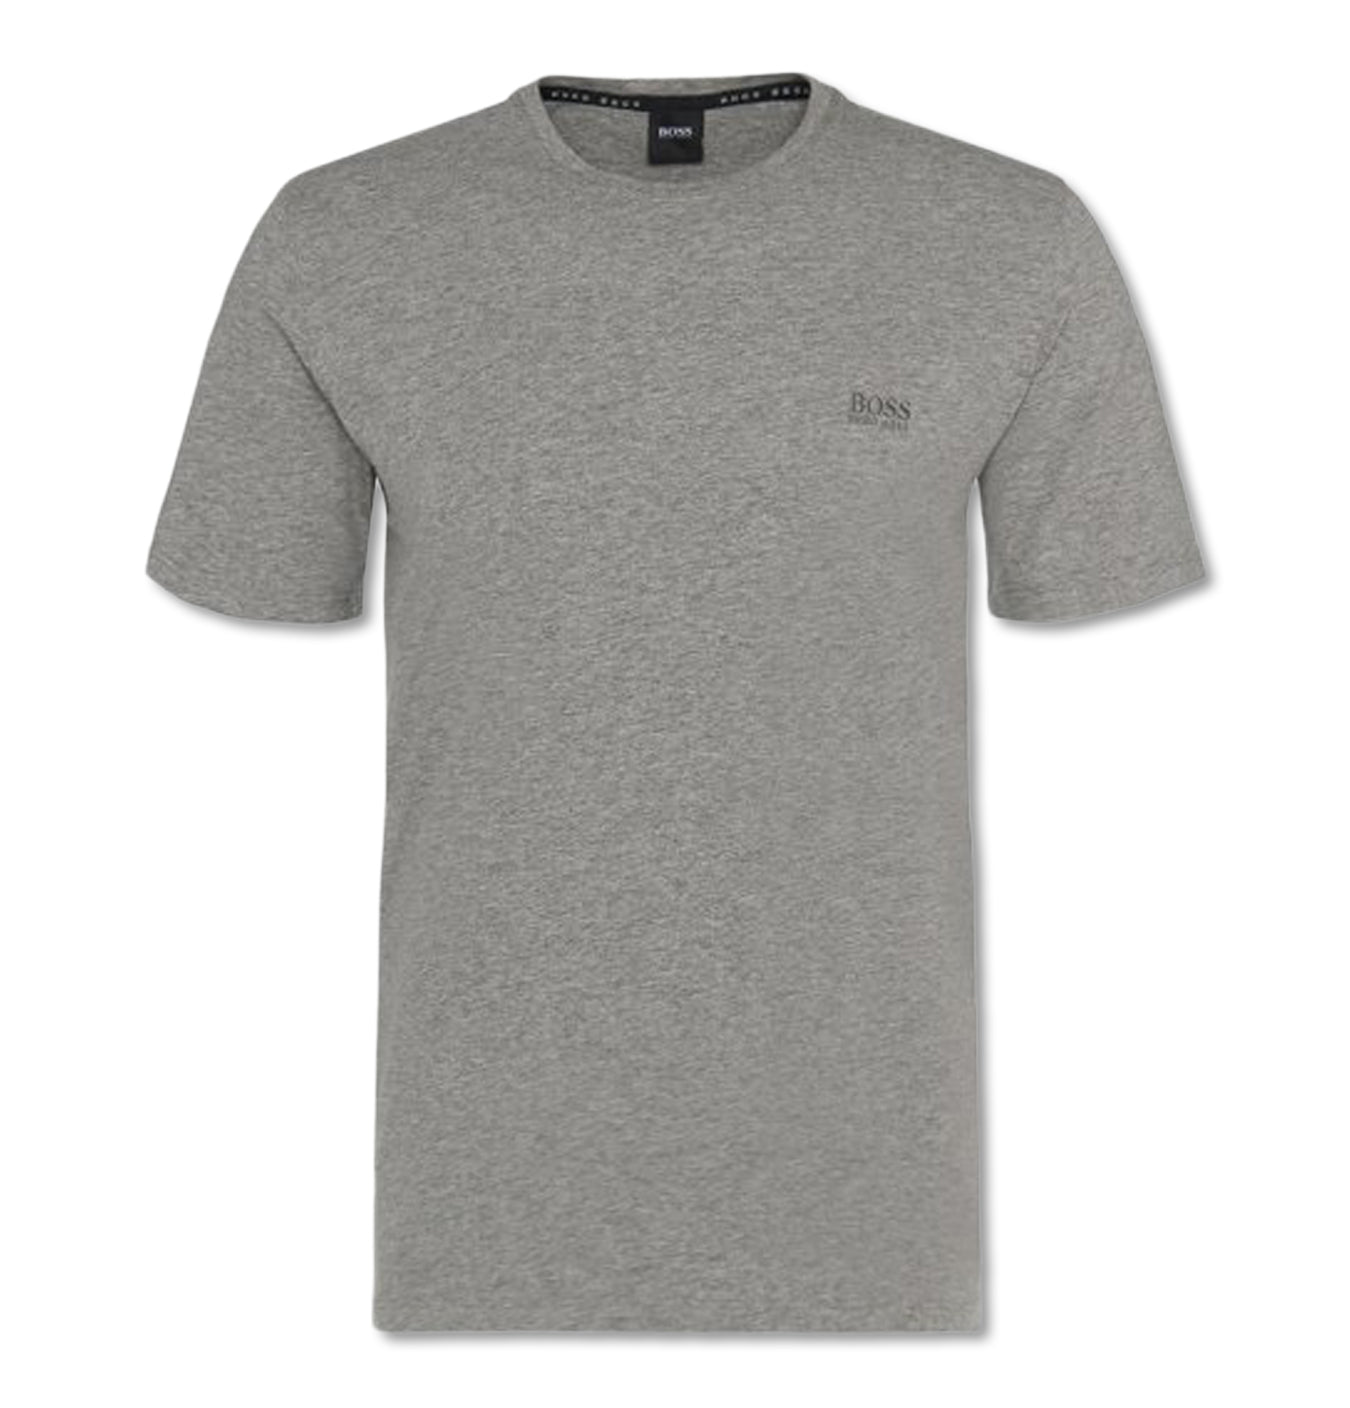 T-shirt in Stretch Cotton Blend Grey